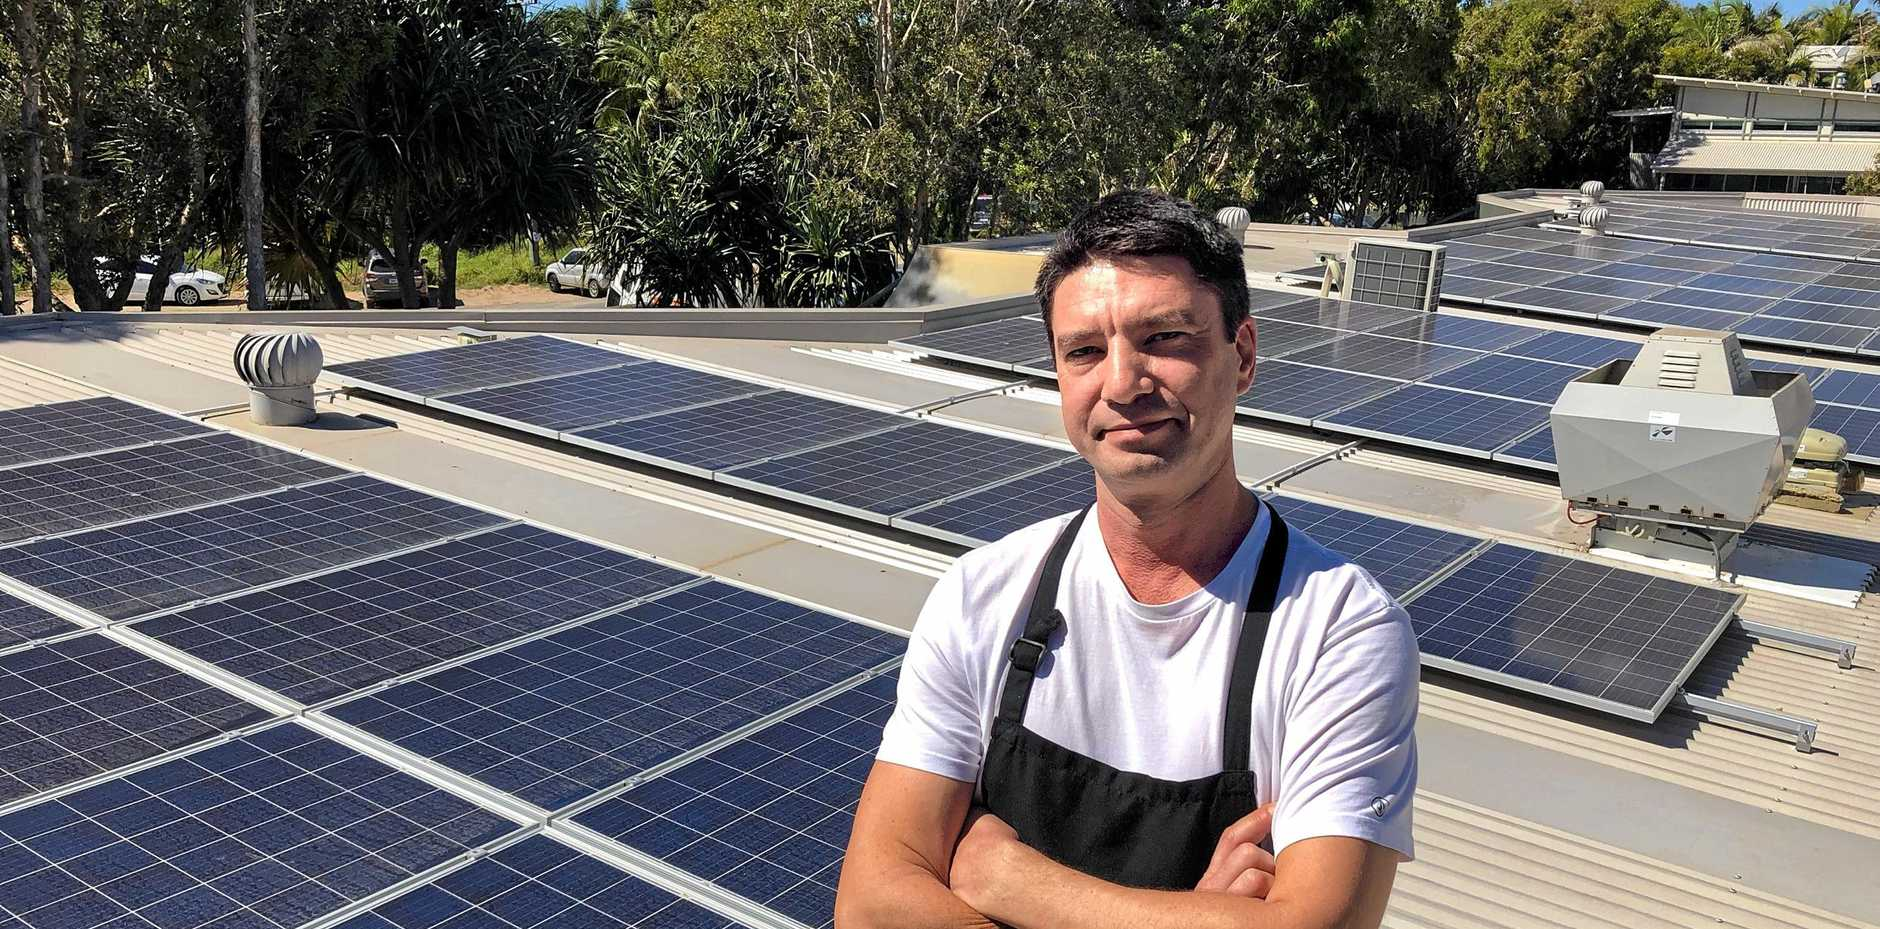 SOLARISED: Christian Poulsen, owner of the Belongil cafe/restaurant with his solar panels pumping.